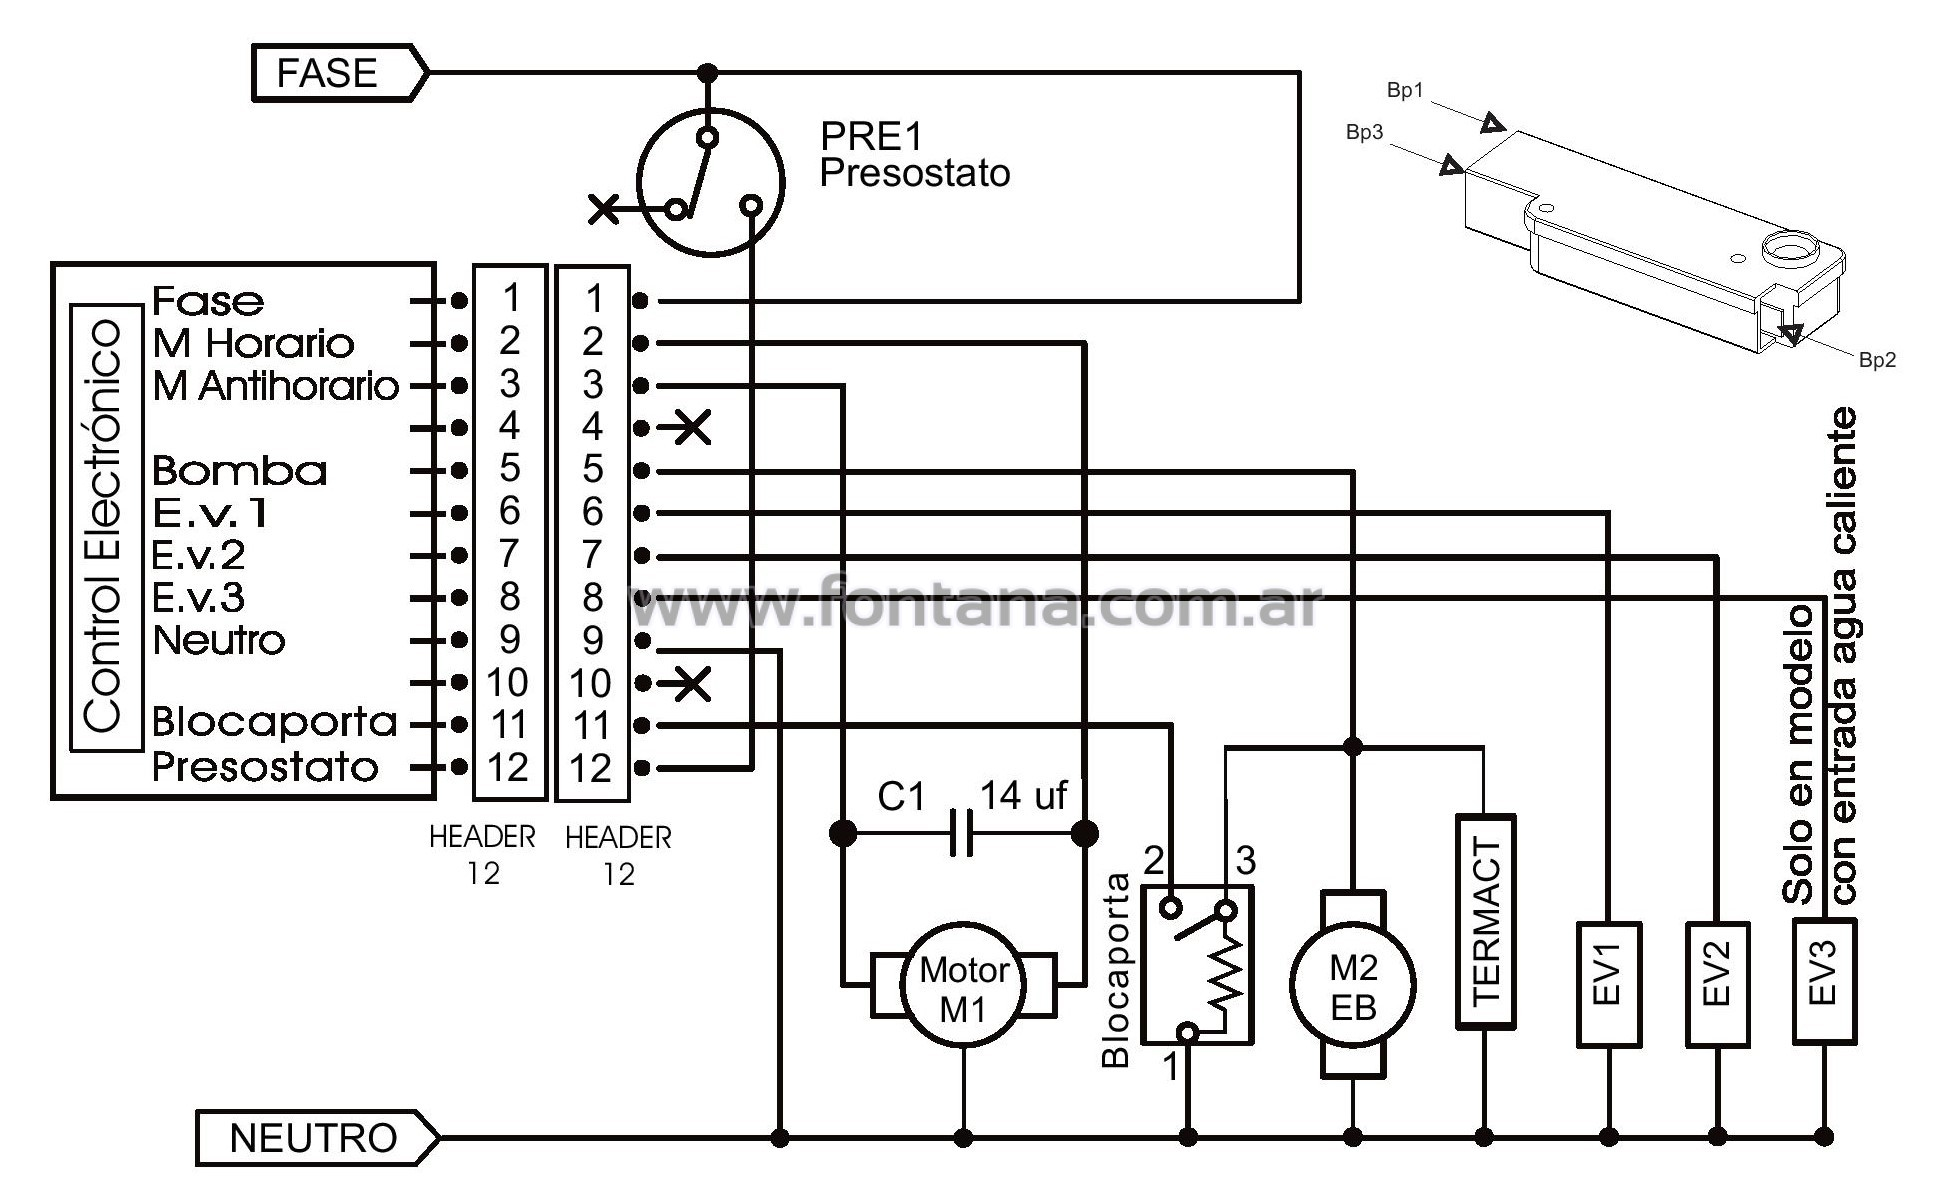 Clipart Transistor as well Carry Look Ahead Adder additionally Joule Thief Circuits Crude To Modern furthermore 70439 Build This Simple Class A Test  lifier likewise . on circuit diagram